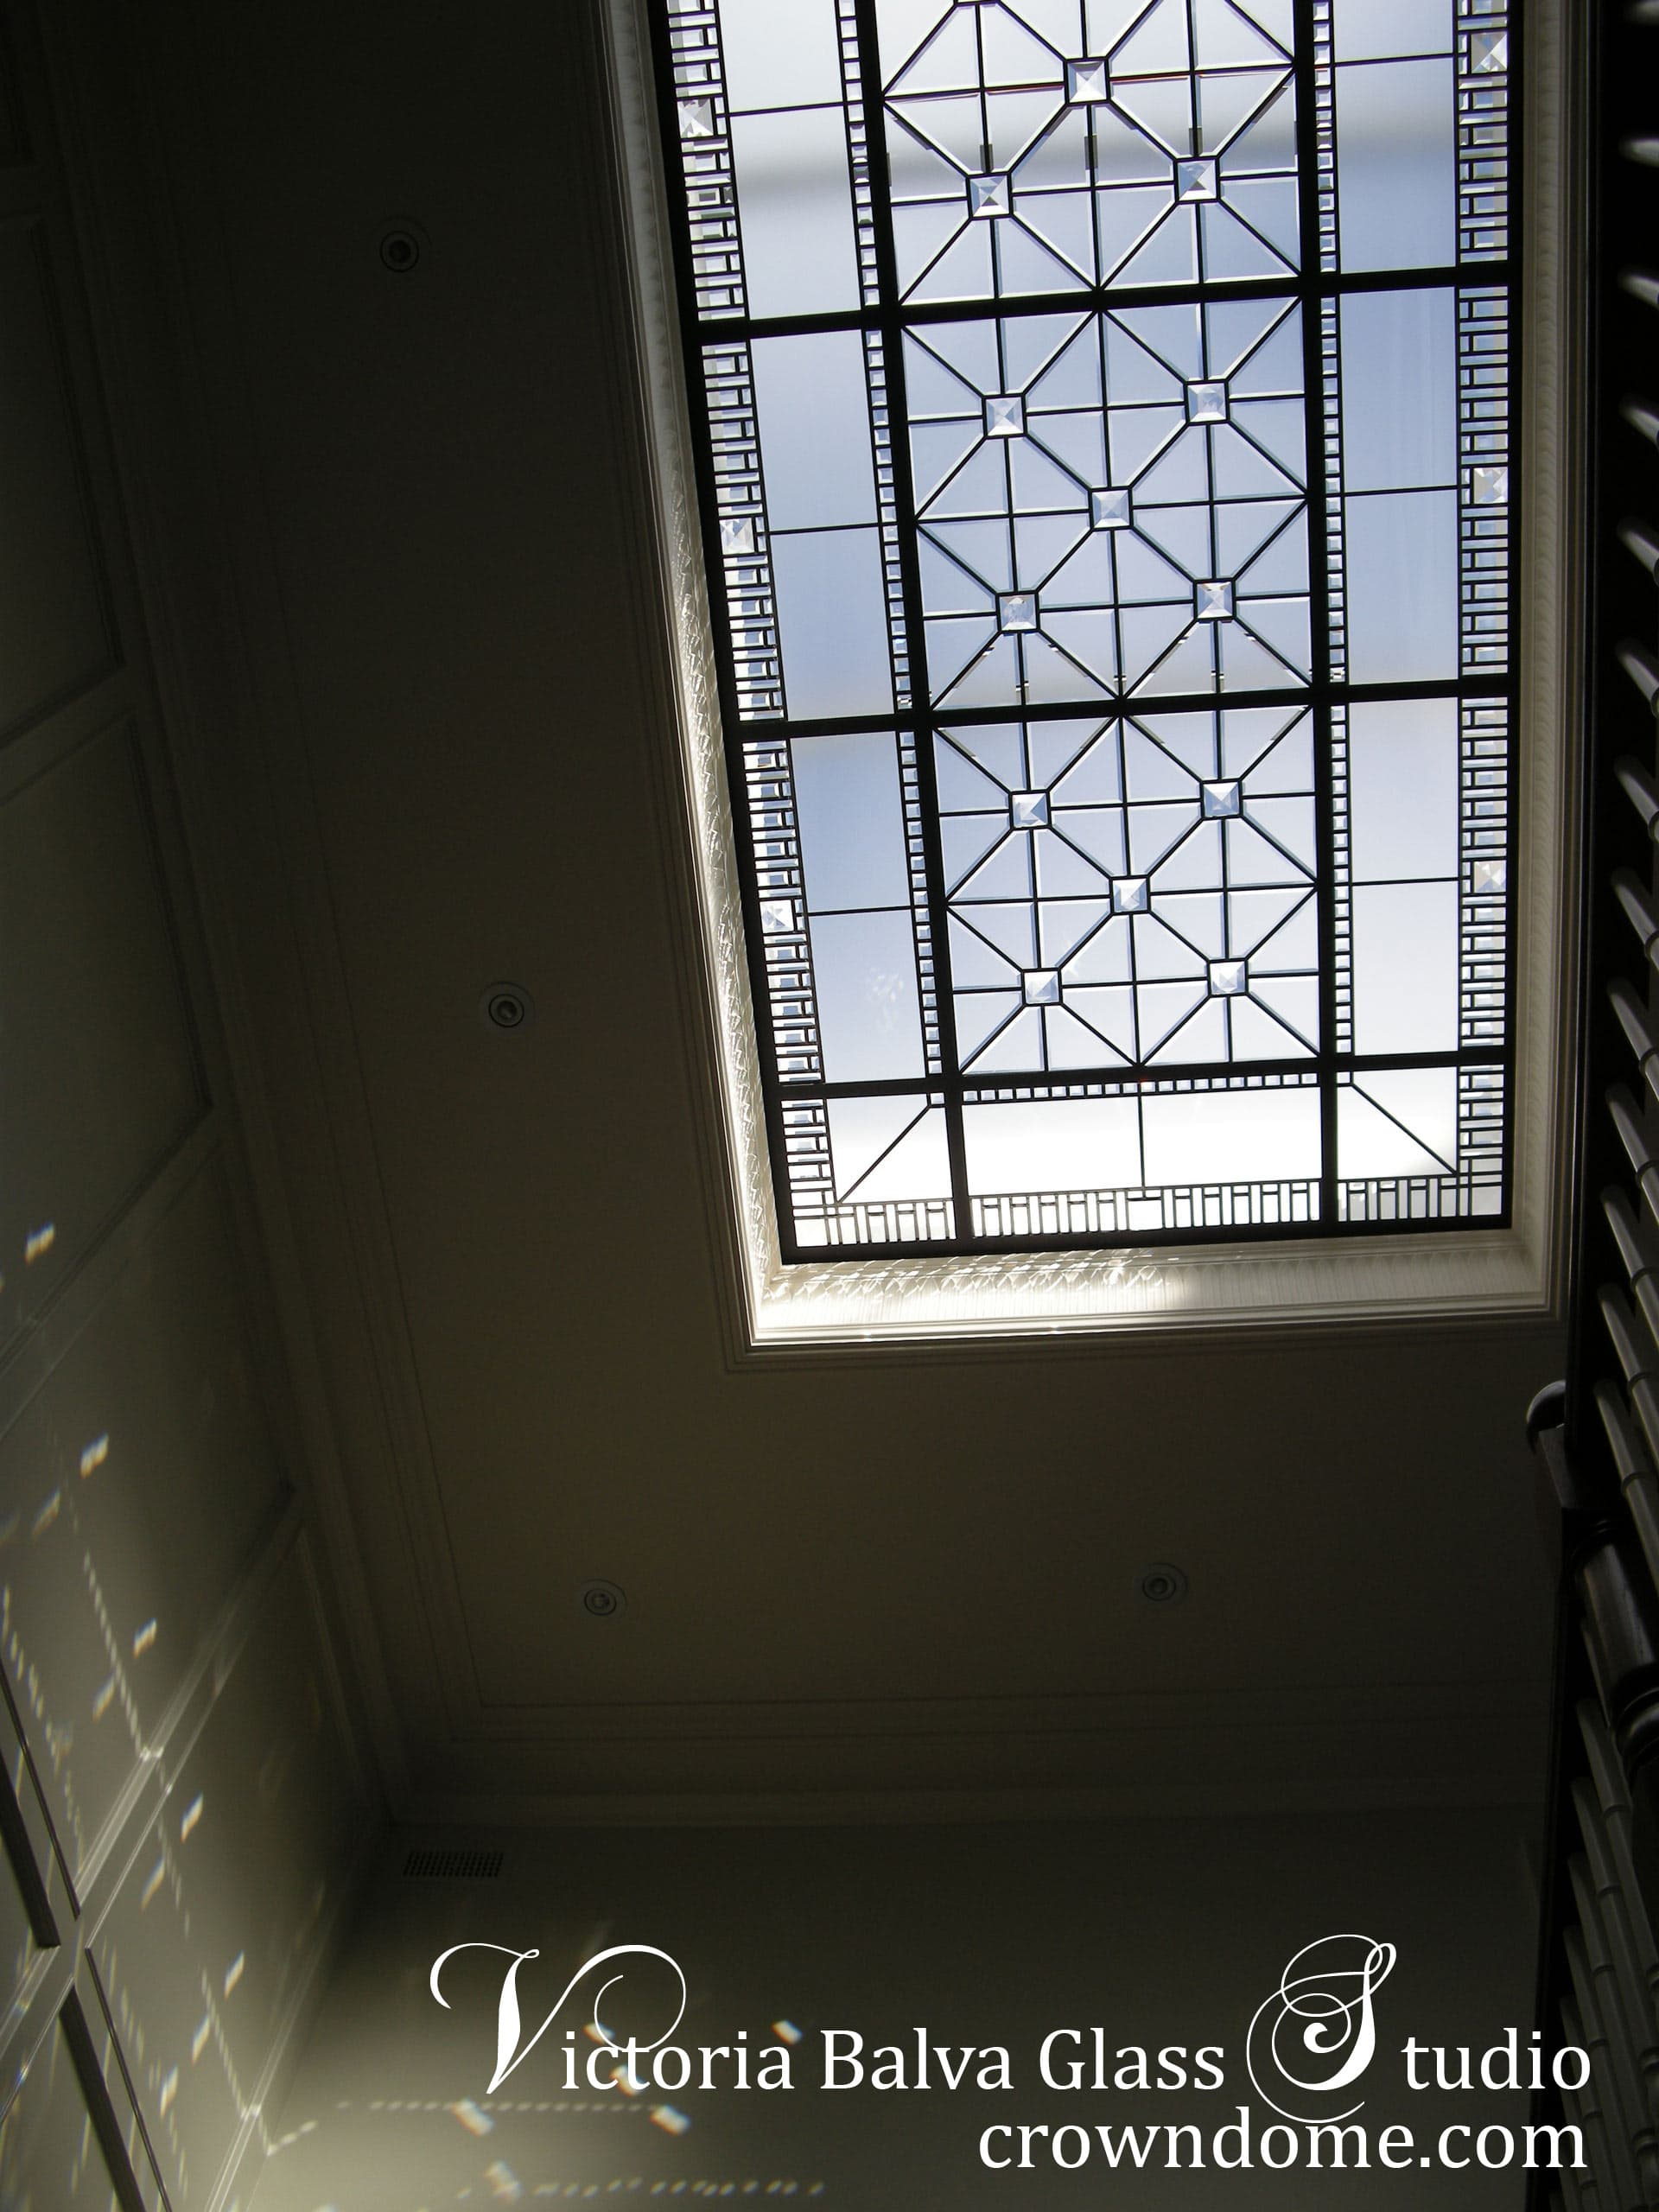 Geometric beveled leaded glass skylight design with custom beveling and large clear crystal jewels in simple geometric style for a hallway of luxury custom built residence in Toronto. Original beveled leaded glass skylight design by architectural glass artist Victoria Balva